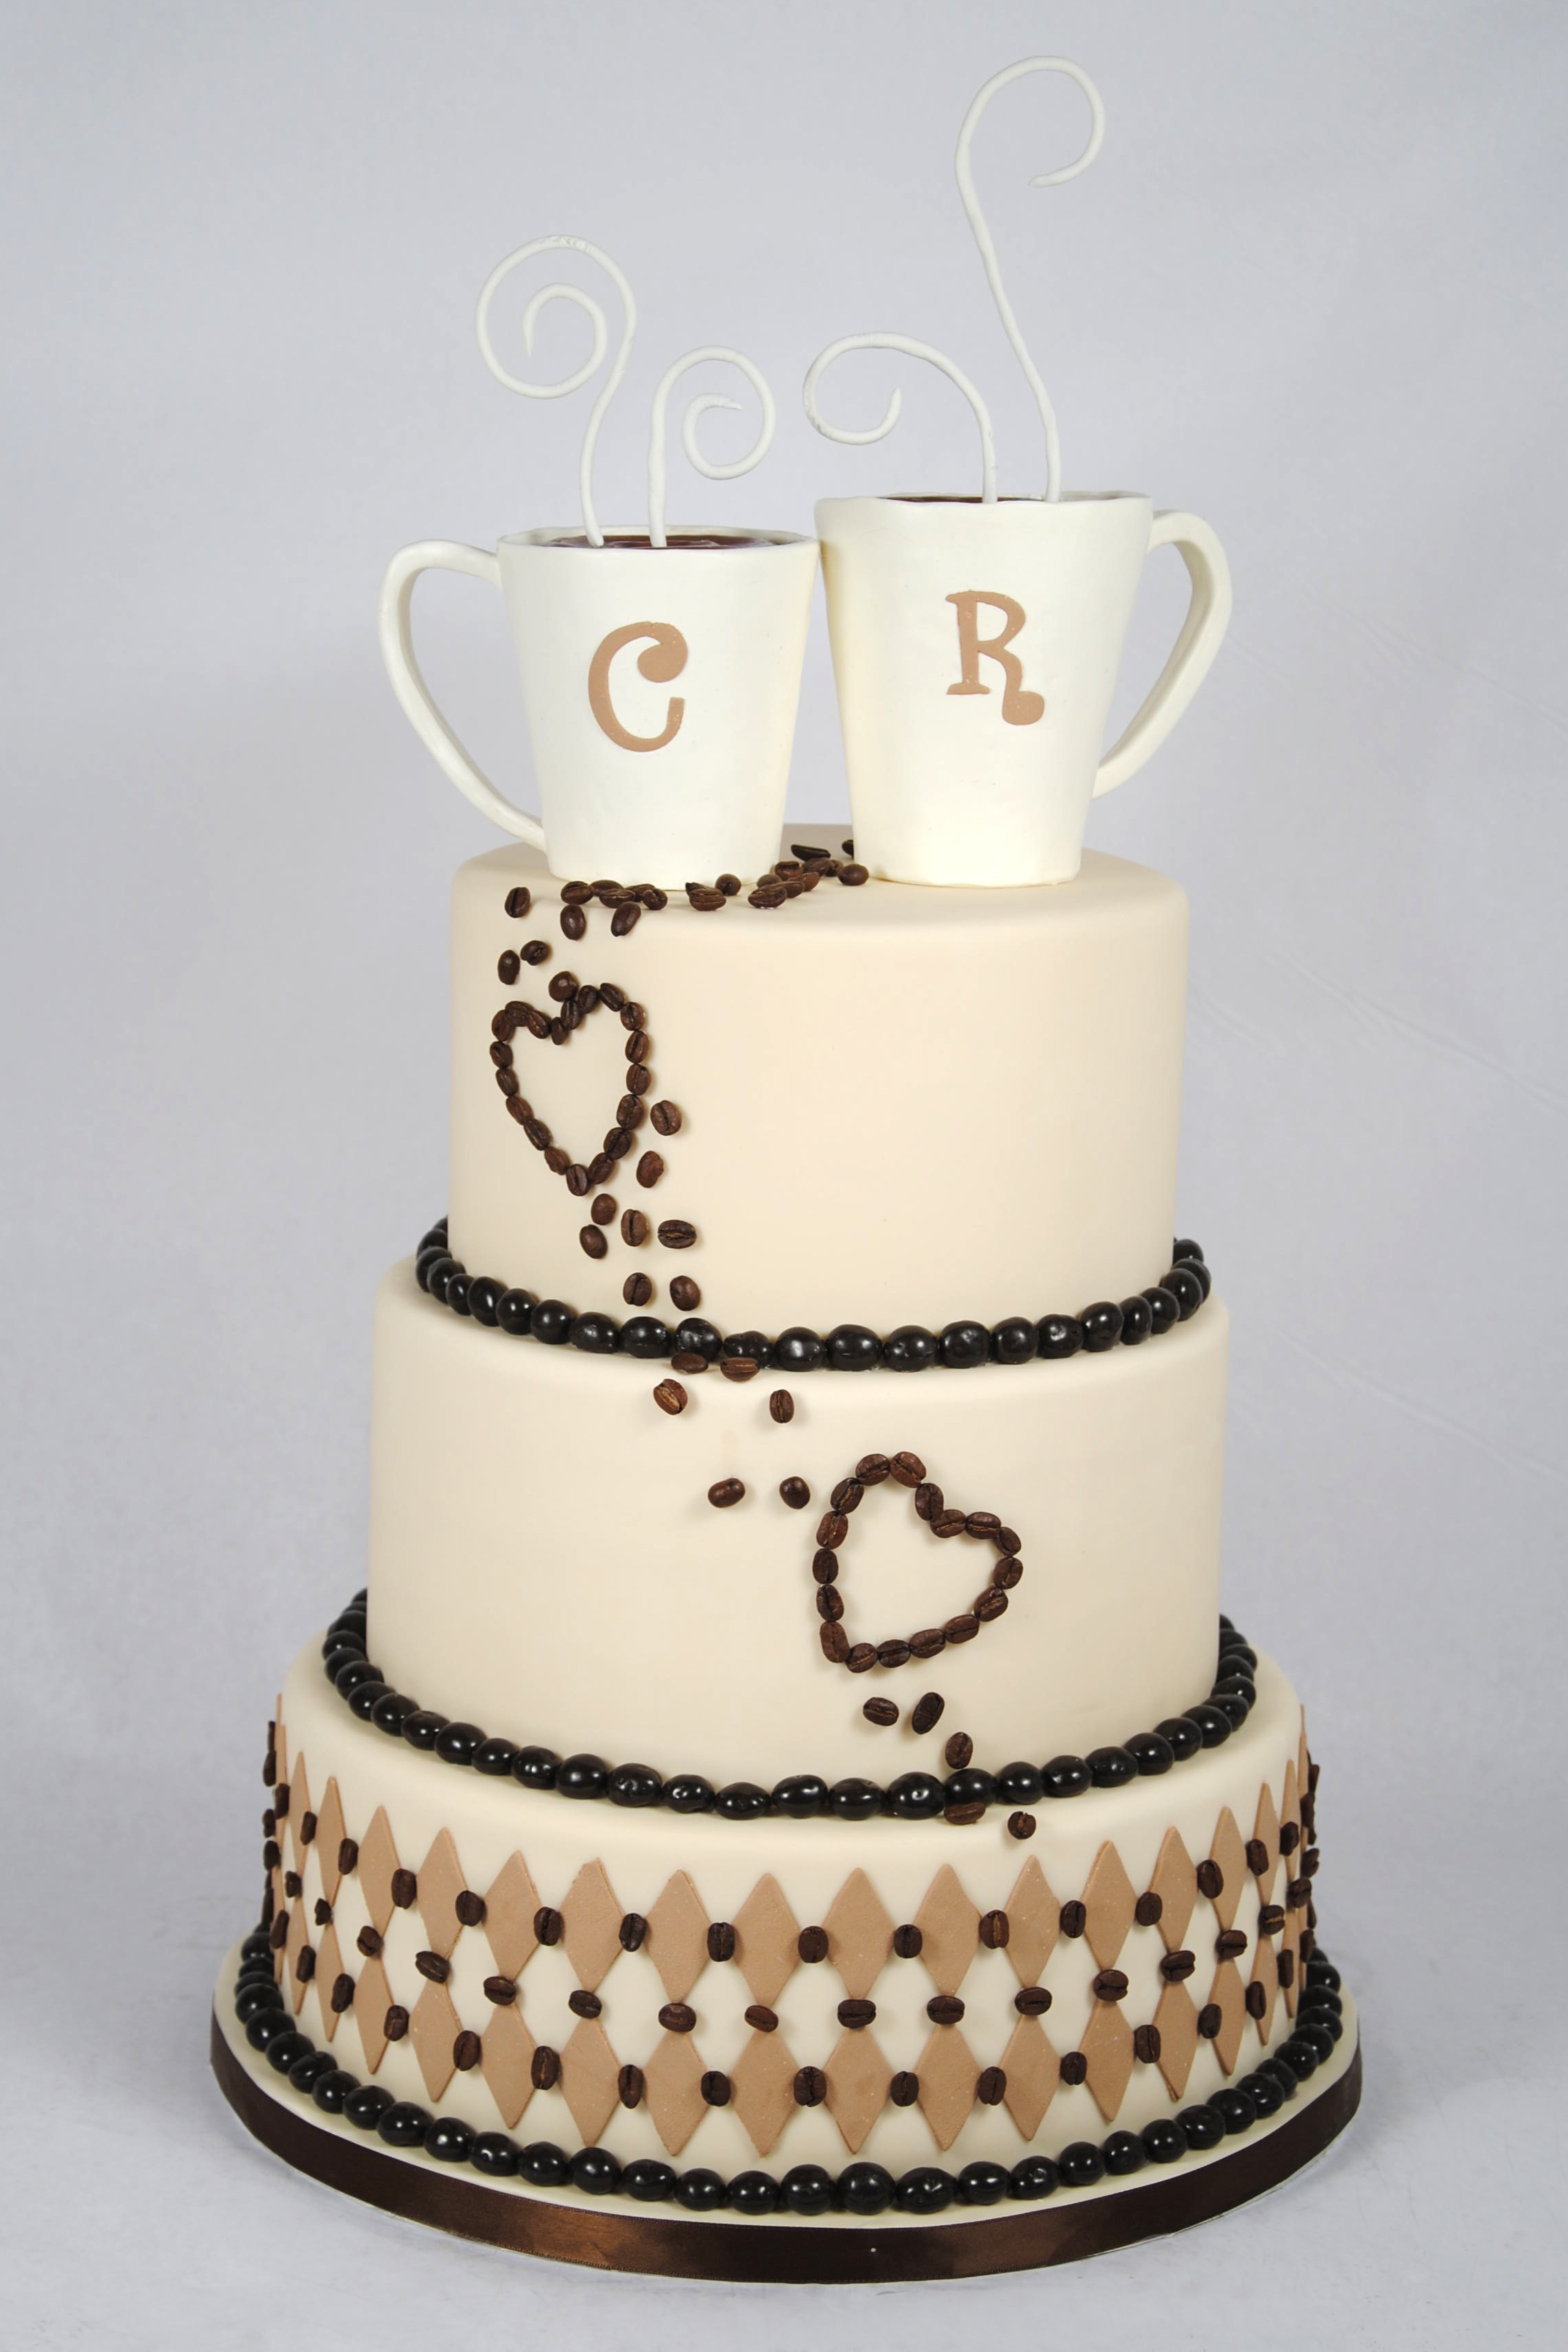 Custom Wedding Cakes For The Love Of Cake Shop In Store Or Online